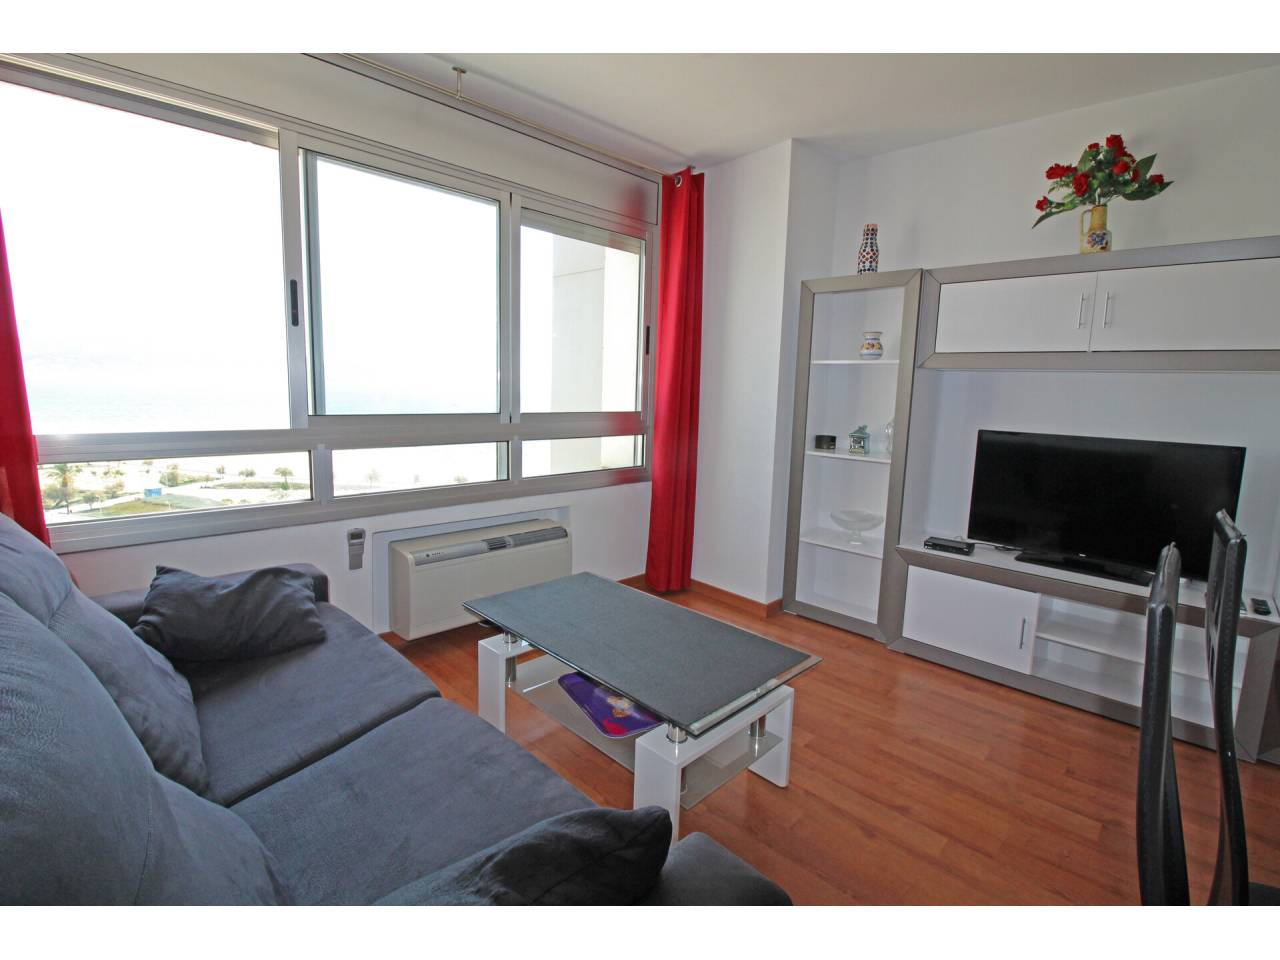 000003 - ANCORA Apartment with views of the sea and the beach in Empuriabrava